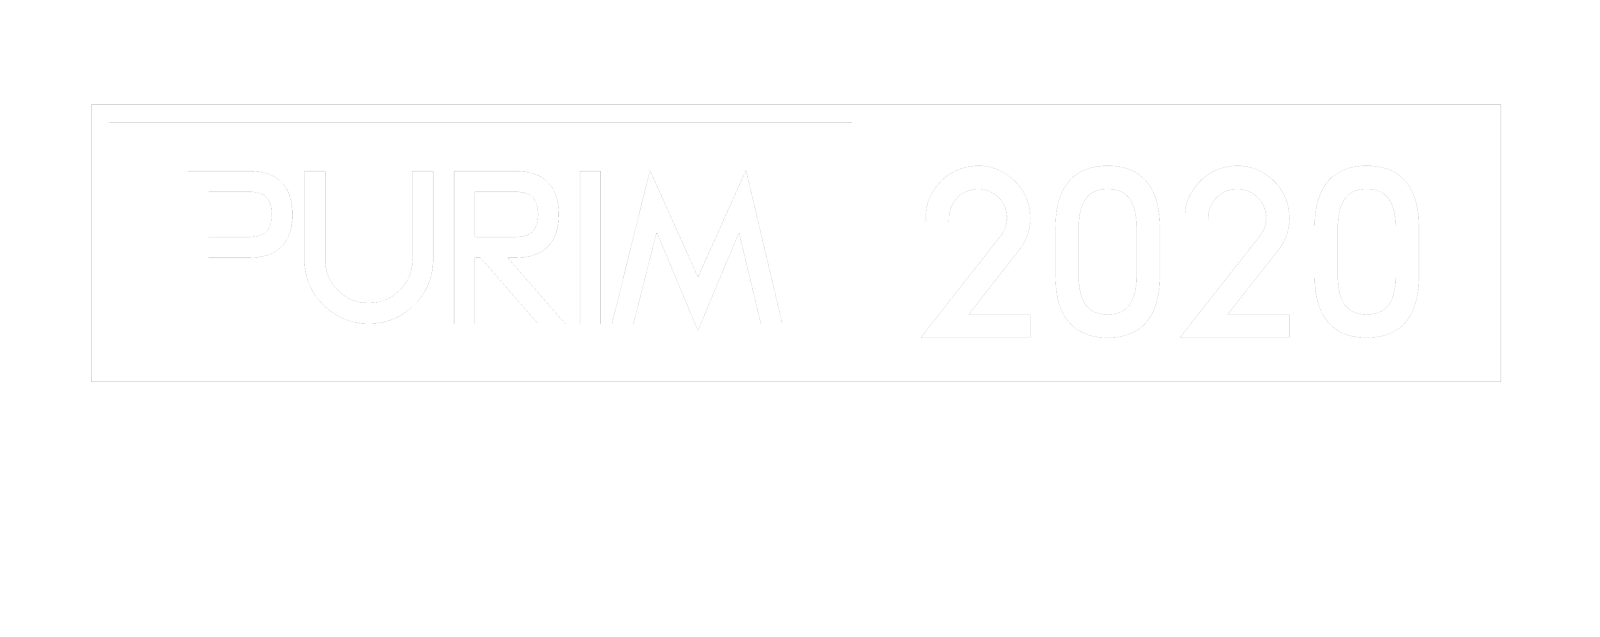 purim-fundraiser-trans3.png